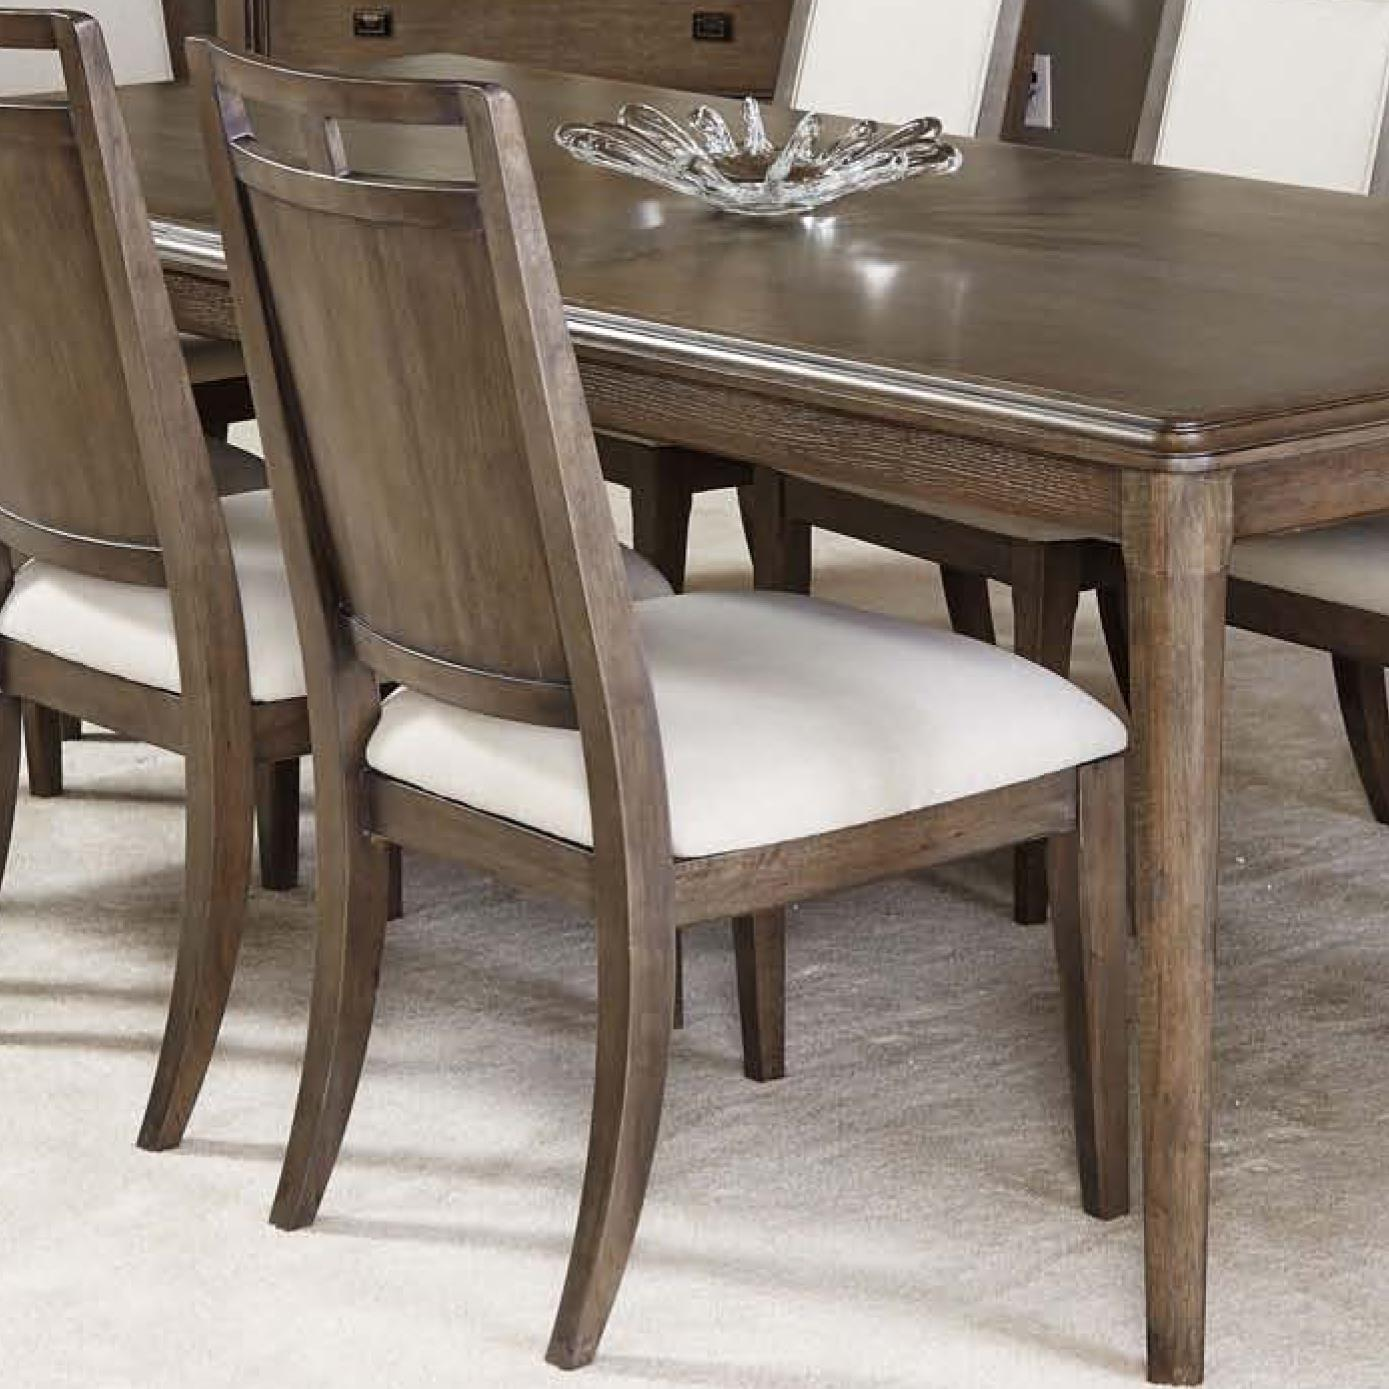 American Drew Dining Room Furniture: American Drew Park Studio 488-636 Contemporary Wood Back